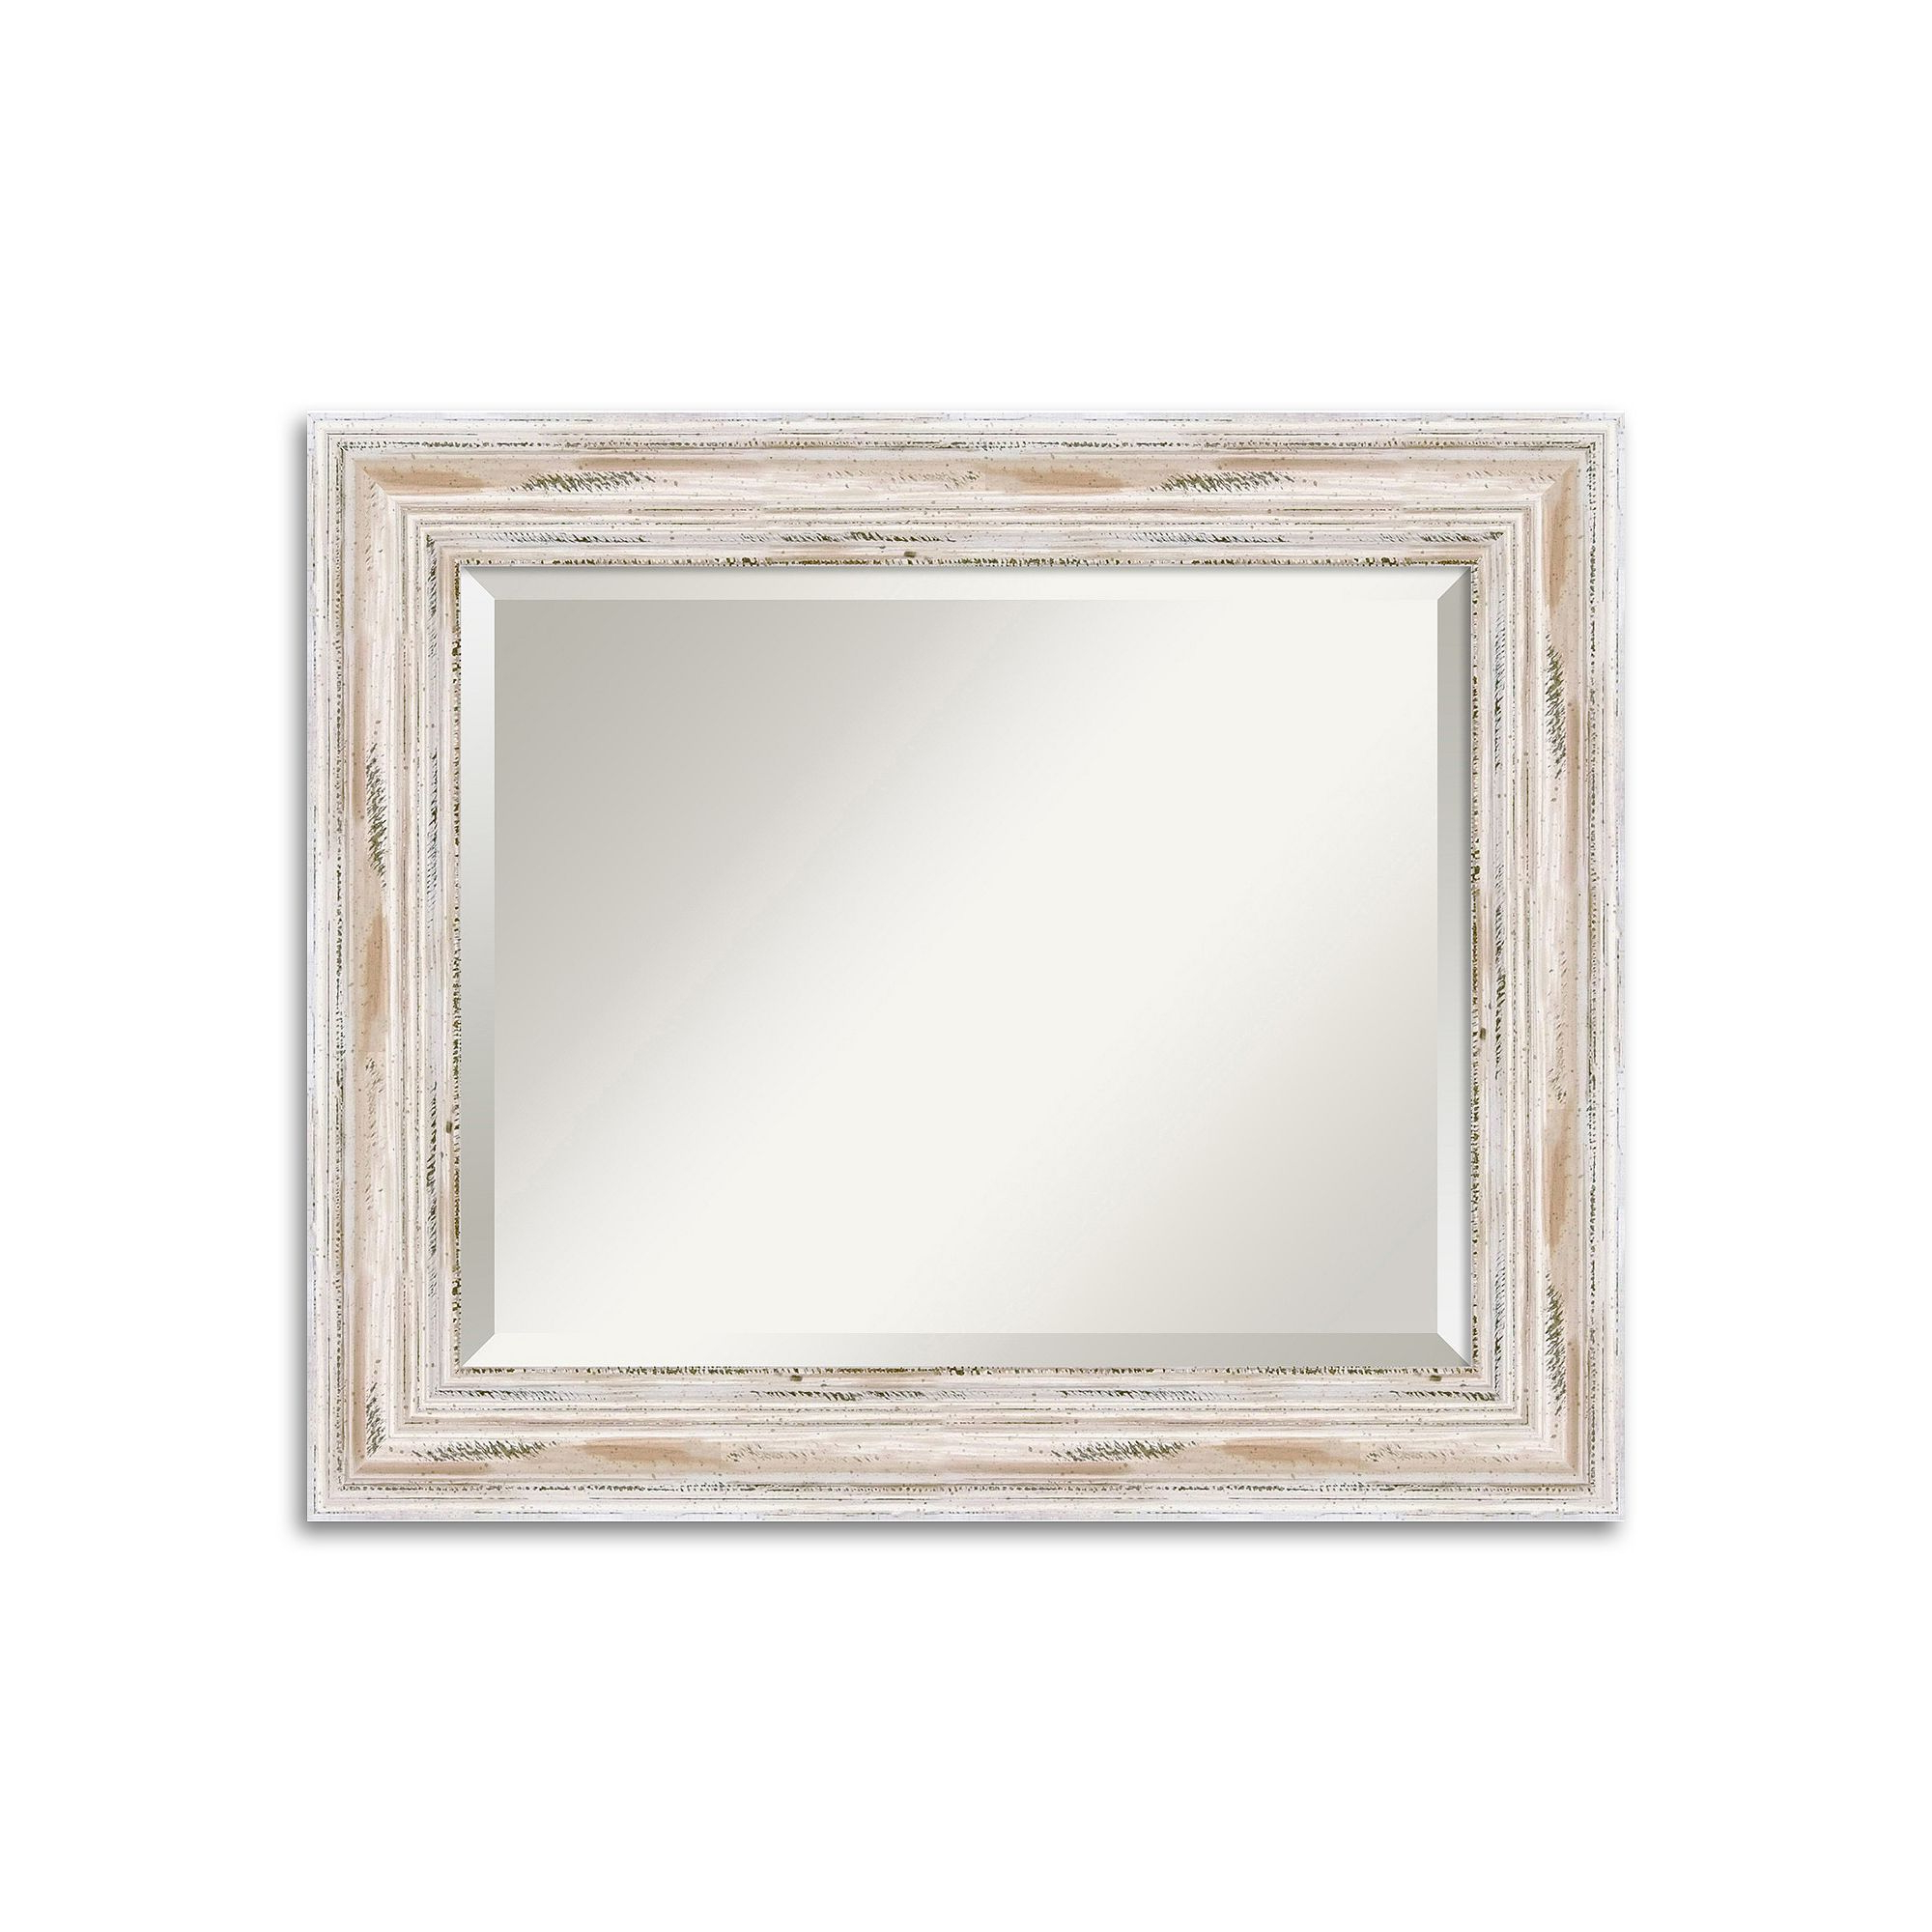 Widely Used Distressed Wall Mirrors With Amanti Art Alexandria Medium Whitewash Distressed Wood Wall Mirror (View 20 of 20)